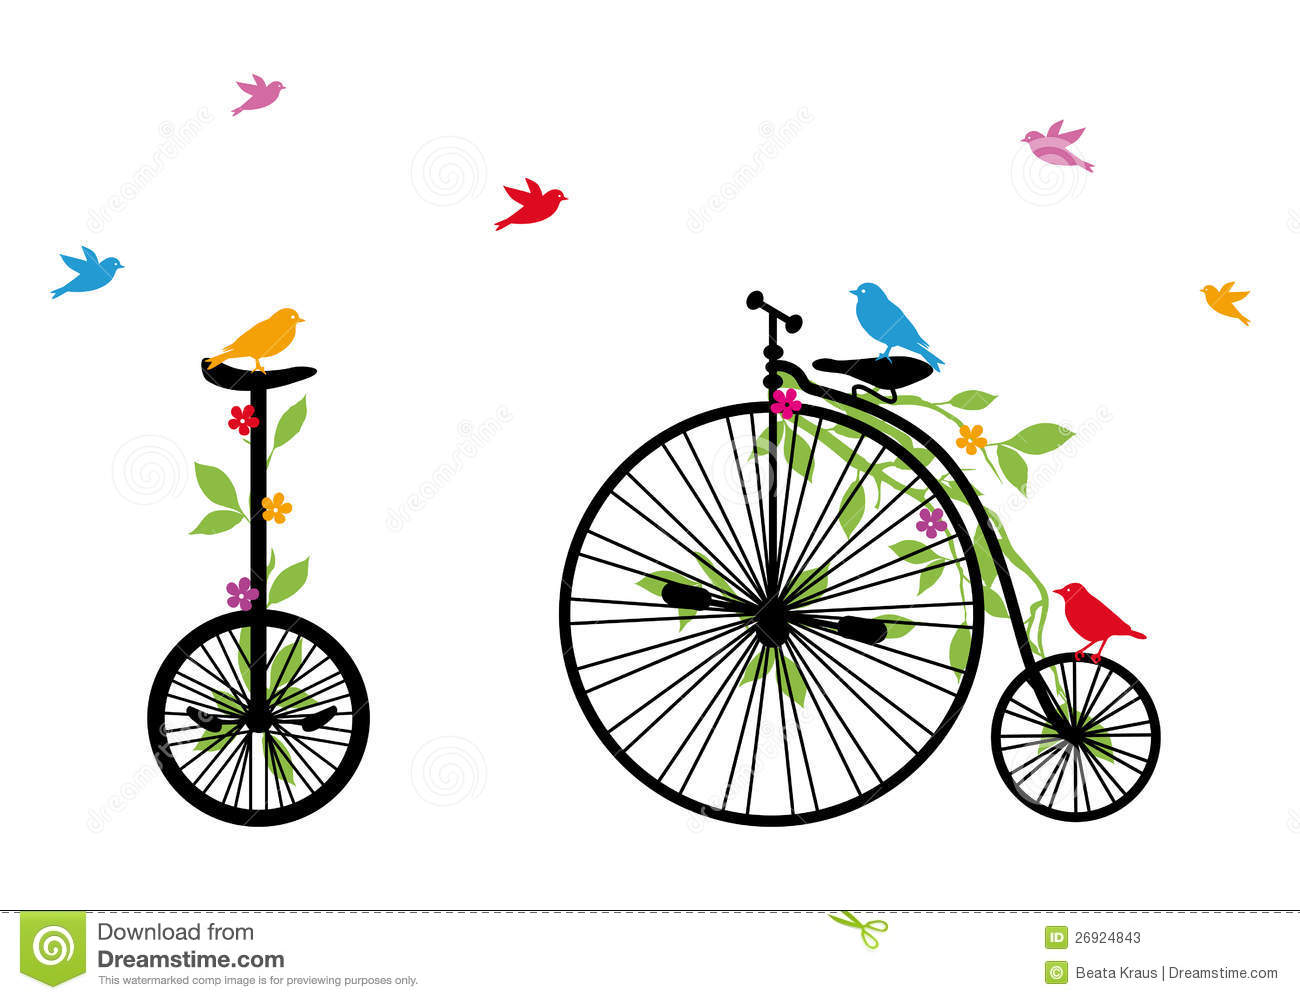 Bicycle illustration retro - photo#11